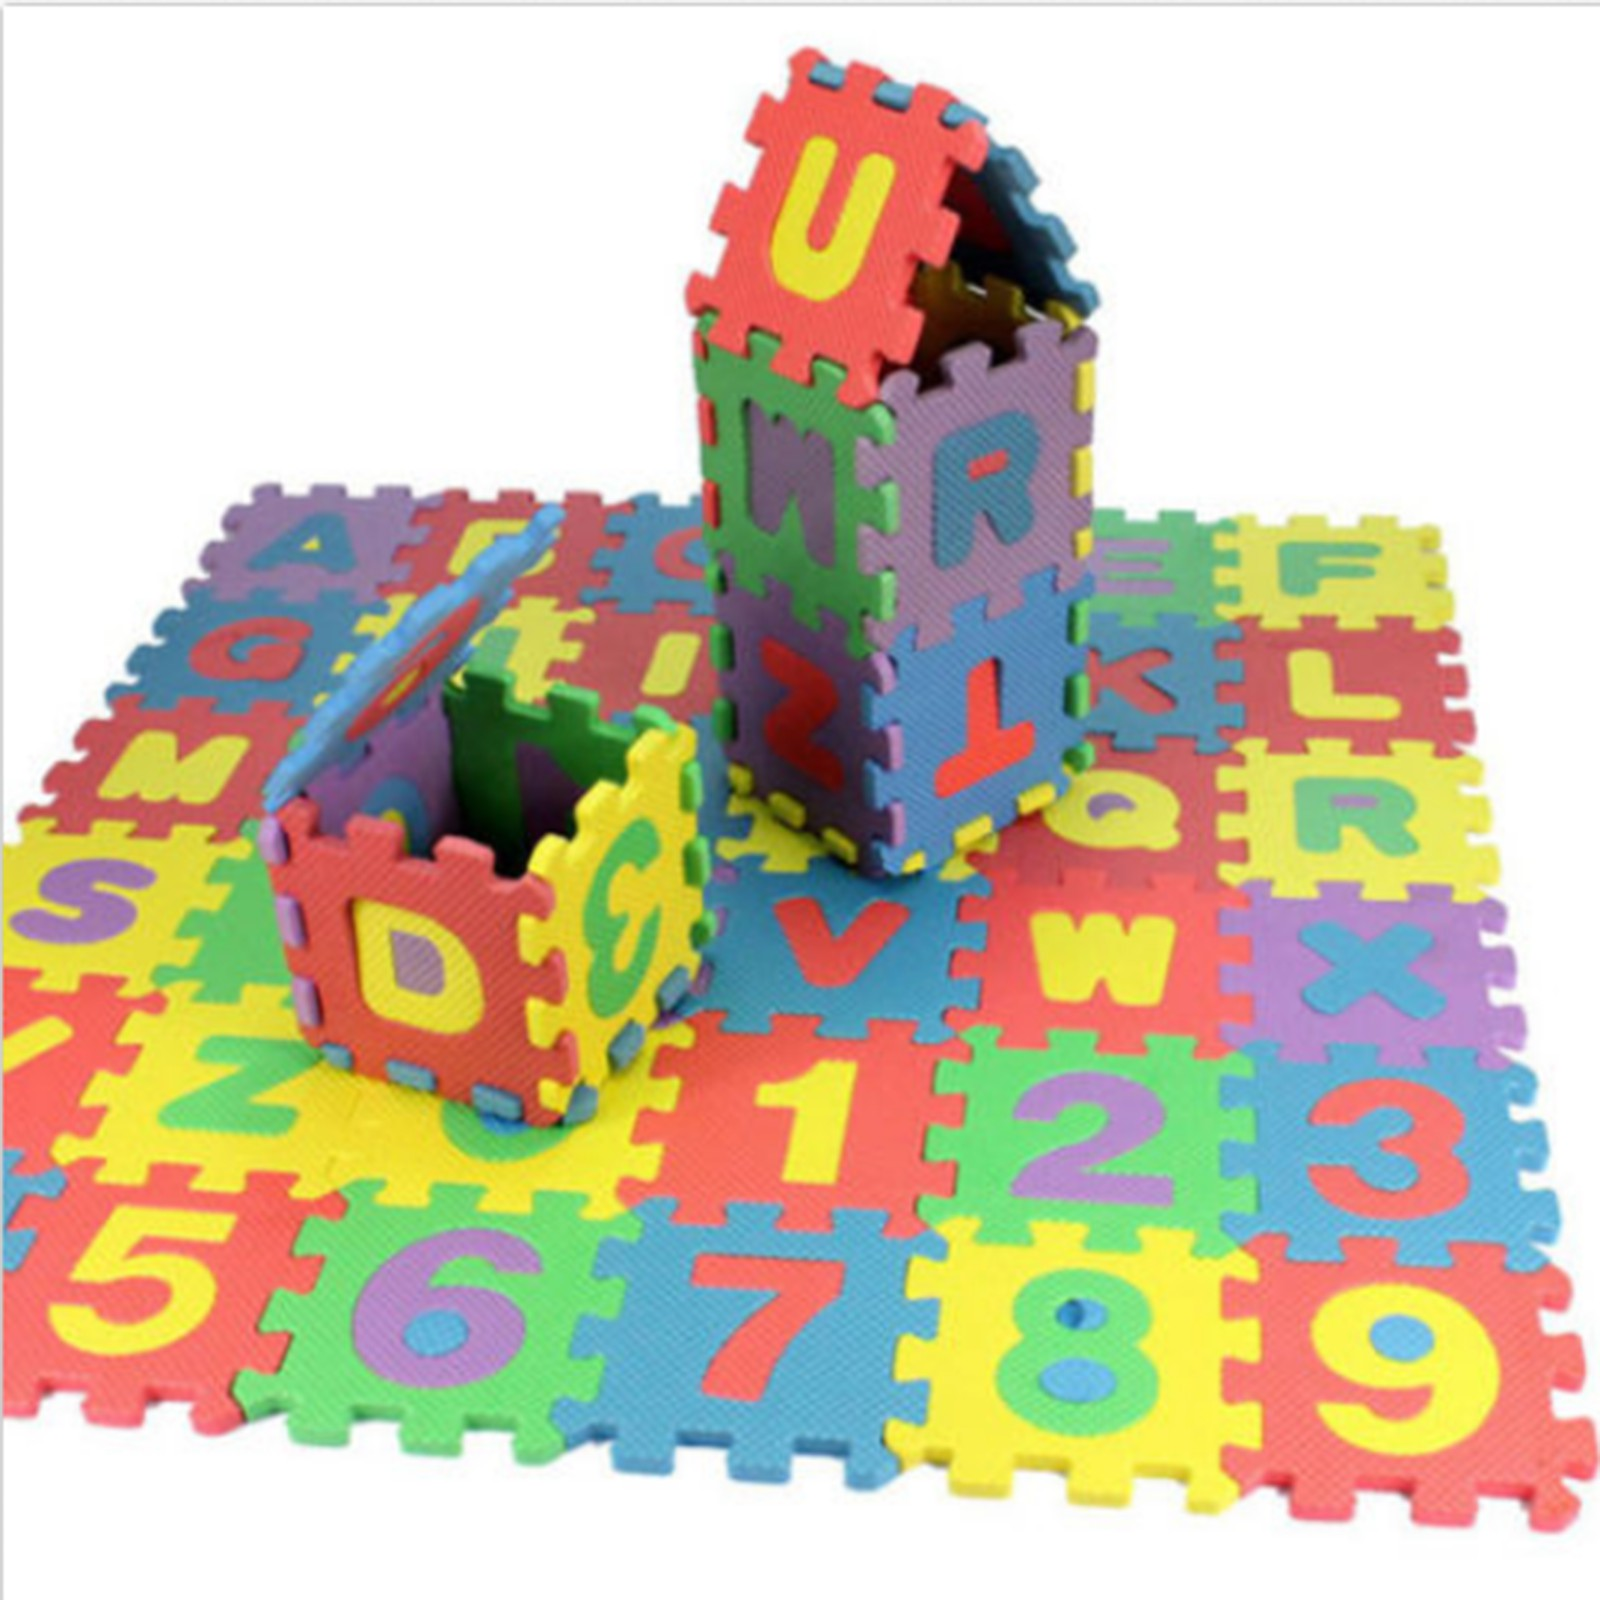 Jeobest Baby Puzzle Mat - Baby Foam Play Mat - Foam Puzzle Play Mat - 36PCS Mini Alphabet Number Baby Puzzle Pad Floor Mat Baby Play Mat Puzzle Eva Foam Floor Mat Home Decoration MZ